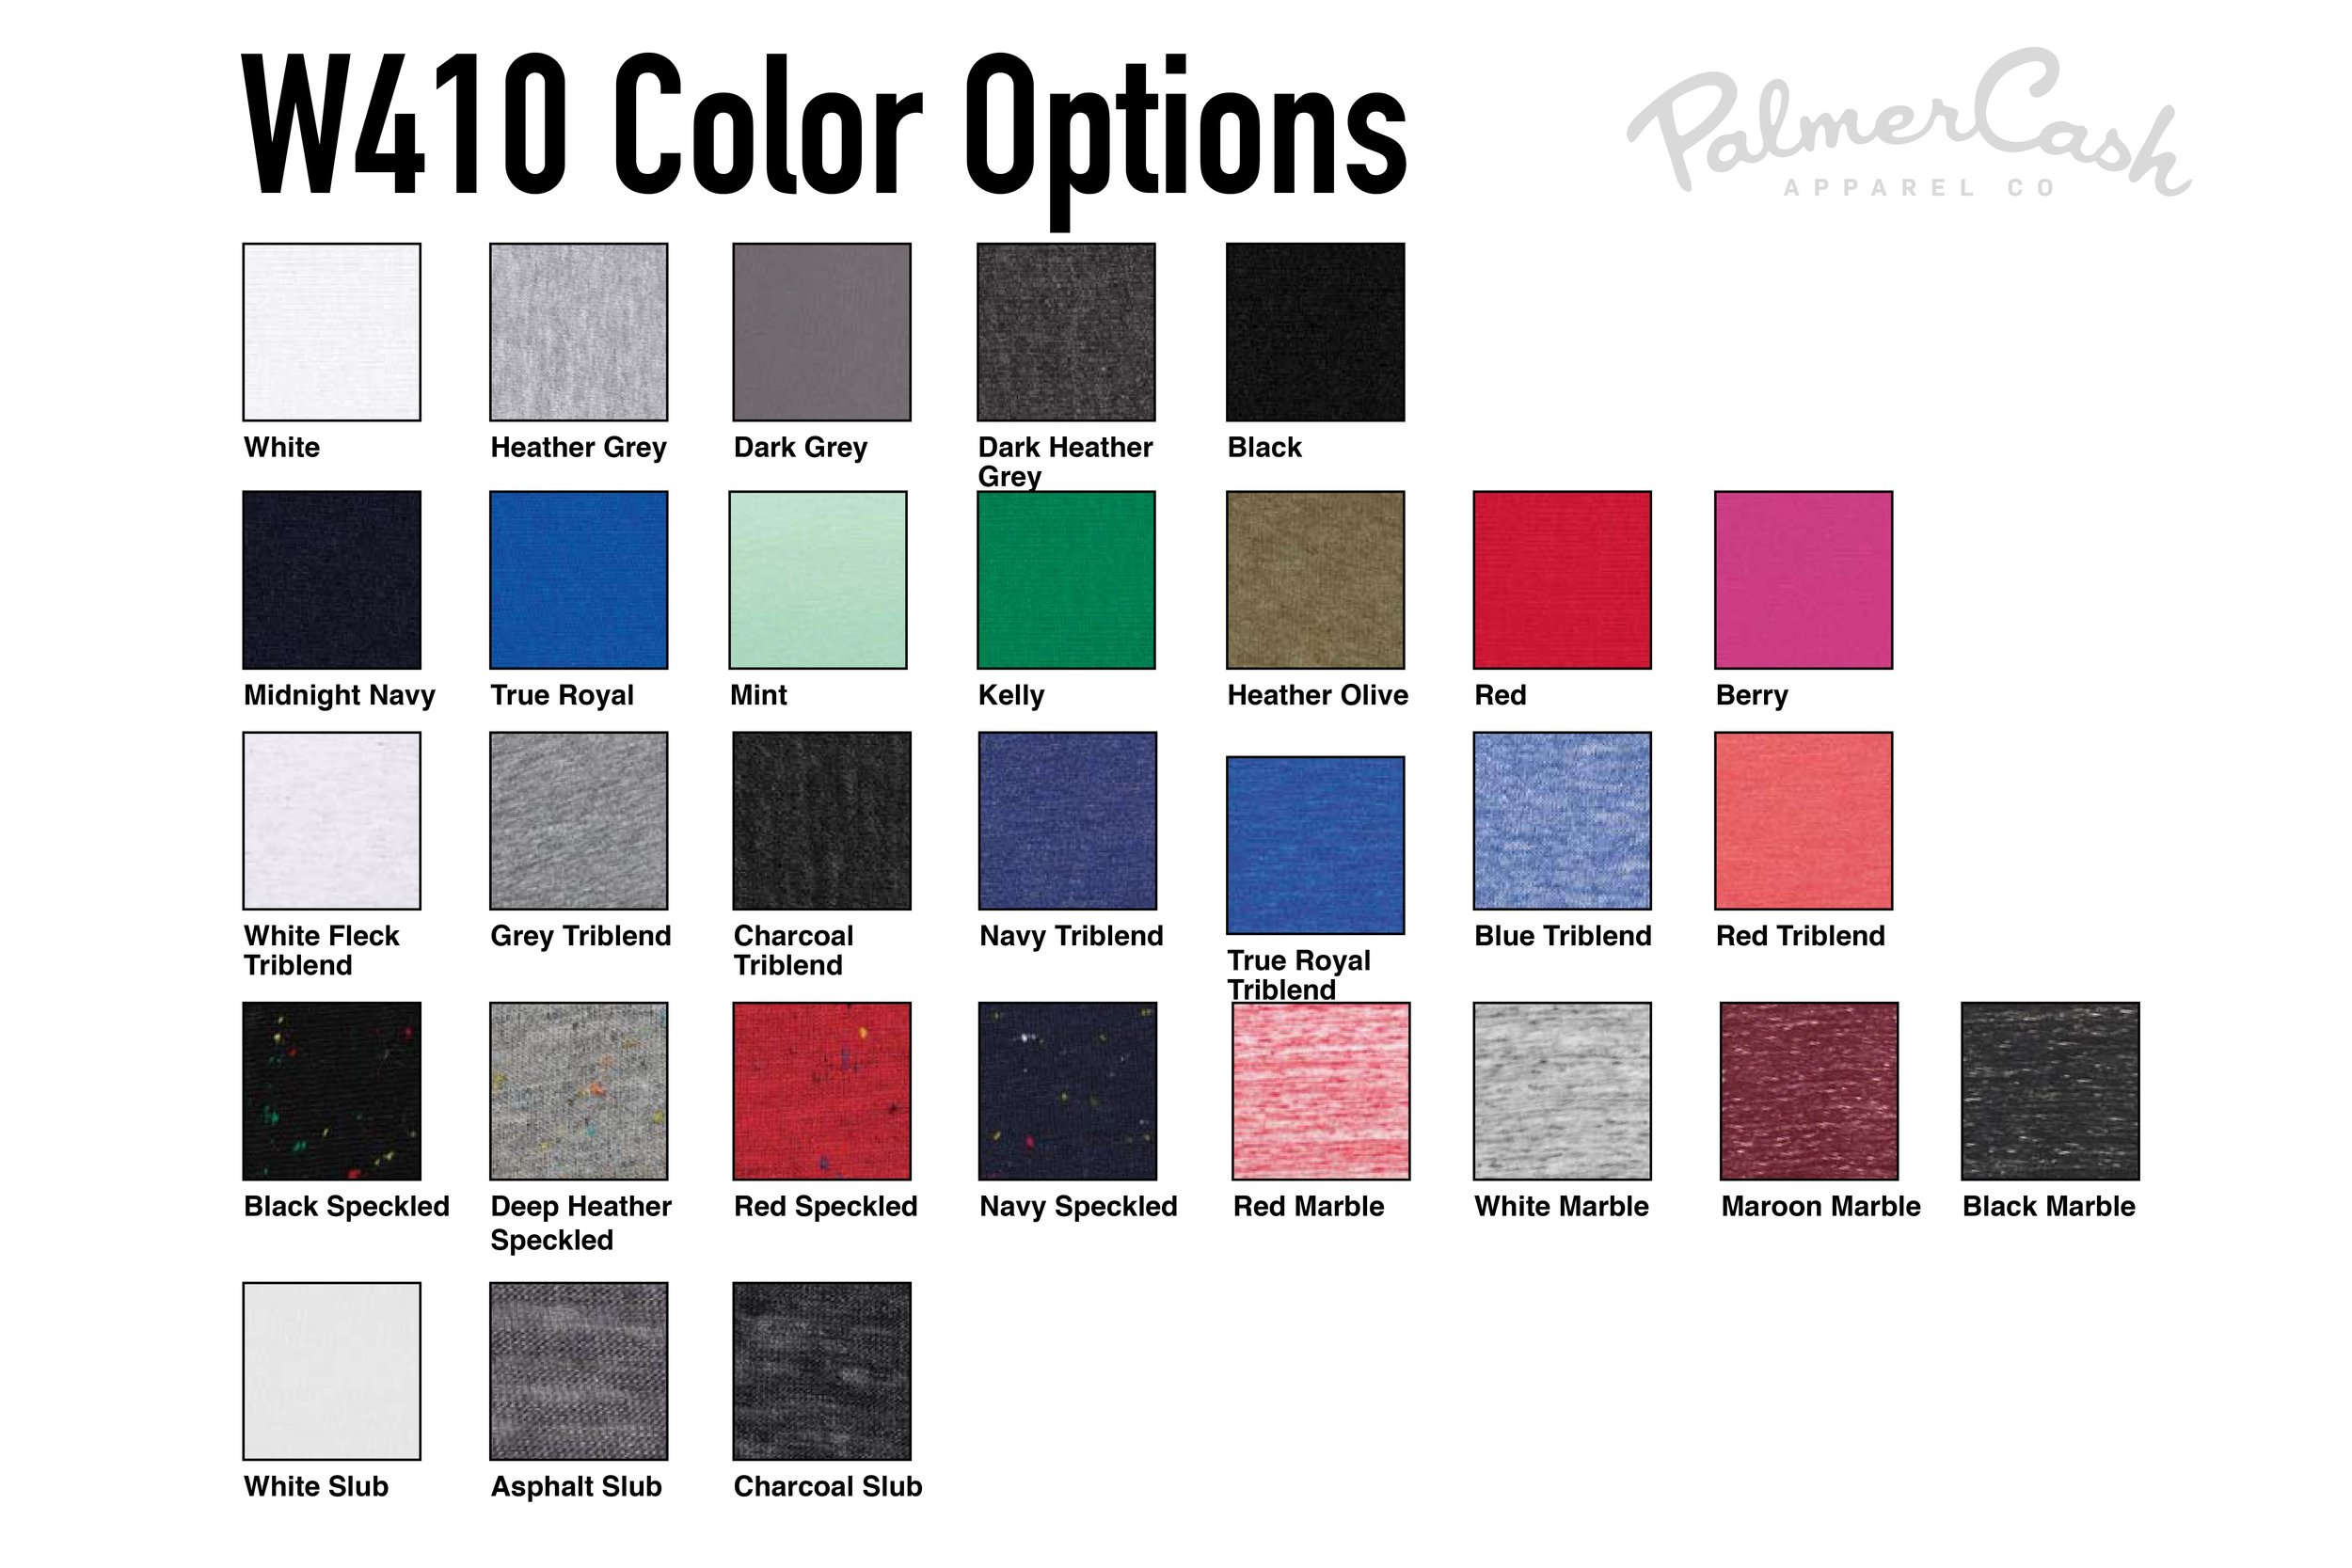 PC_W410_Color_Options-01.jpg